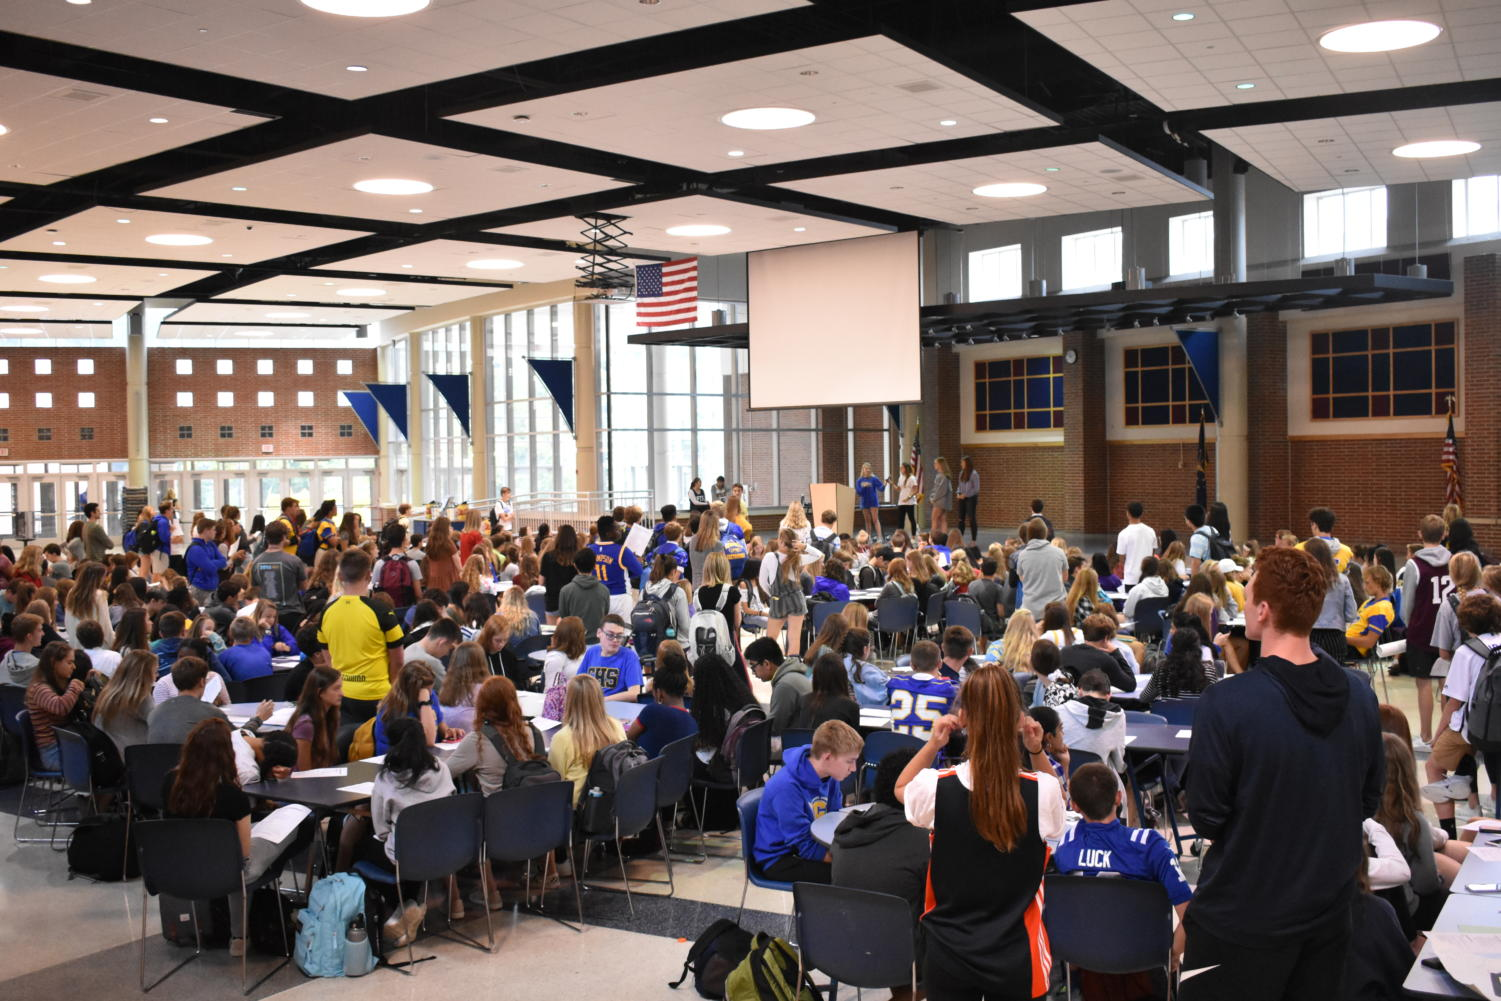 House members meet in the freshmen cafeteria during SRT. The next House meetings will take place during SRT on Jan. 30 and Feb. 13.